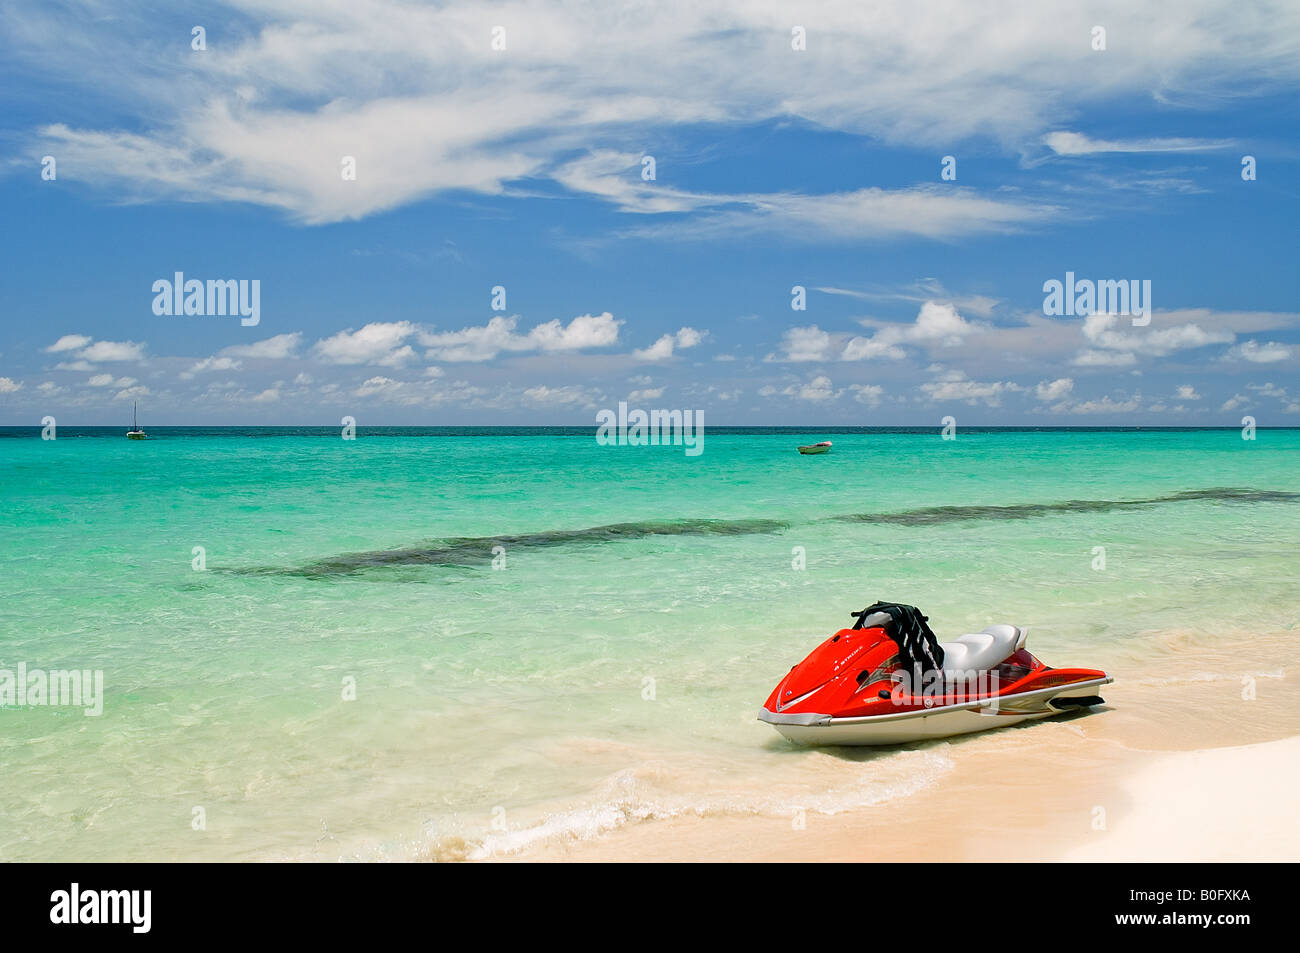 A personal watercraft floats in the water beckoning someone to get on for a ride. - Stock Image